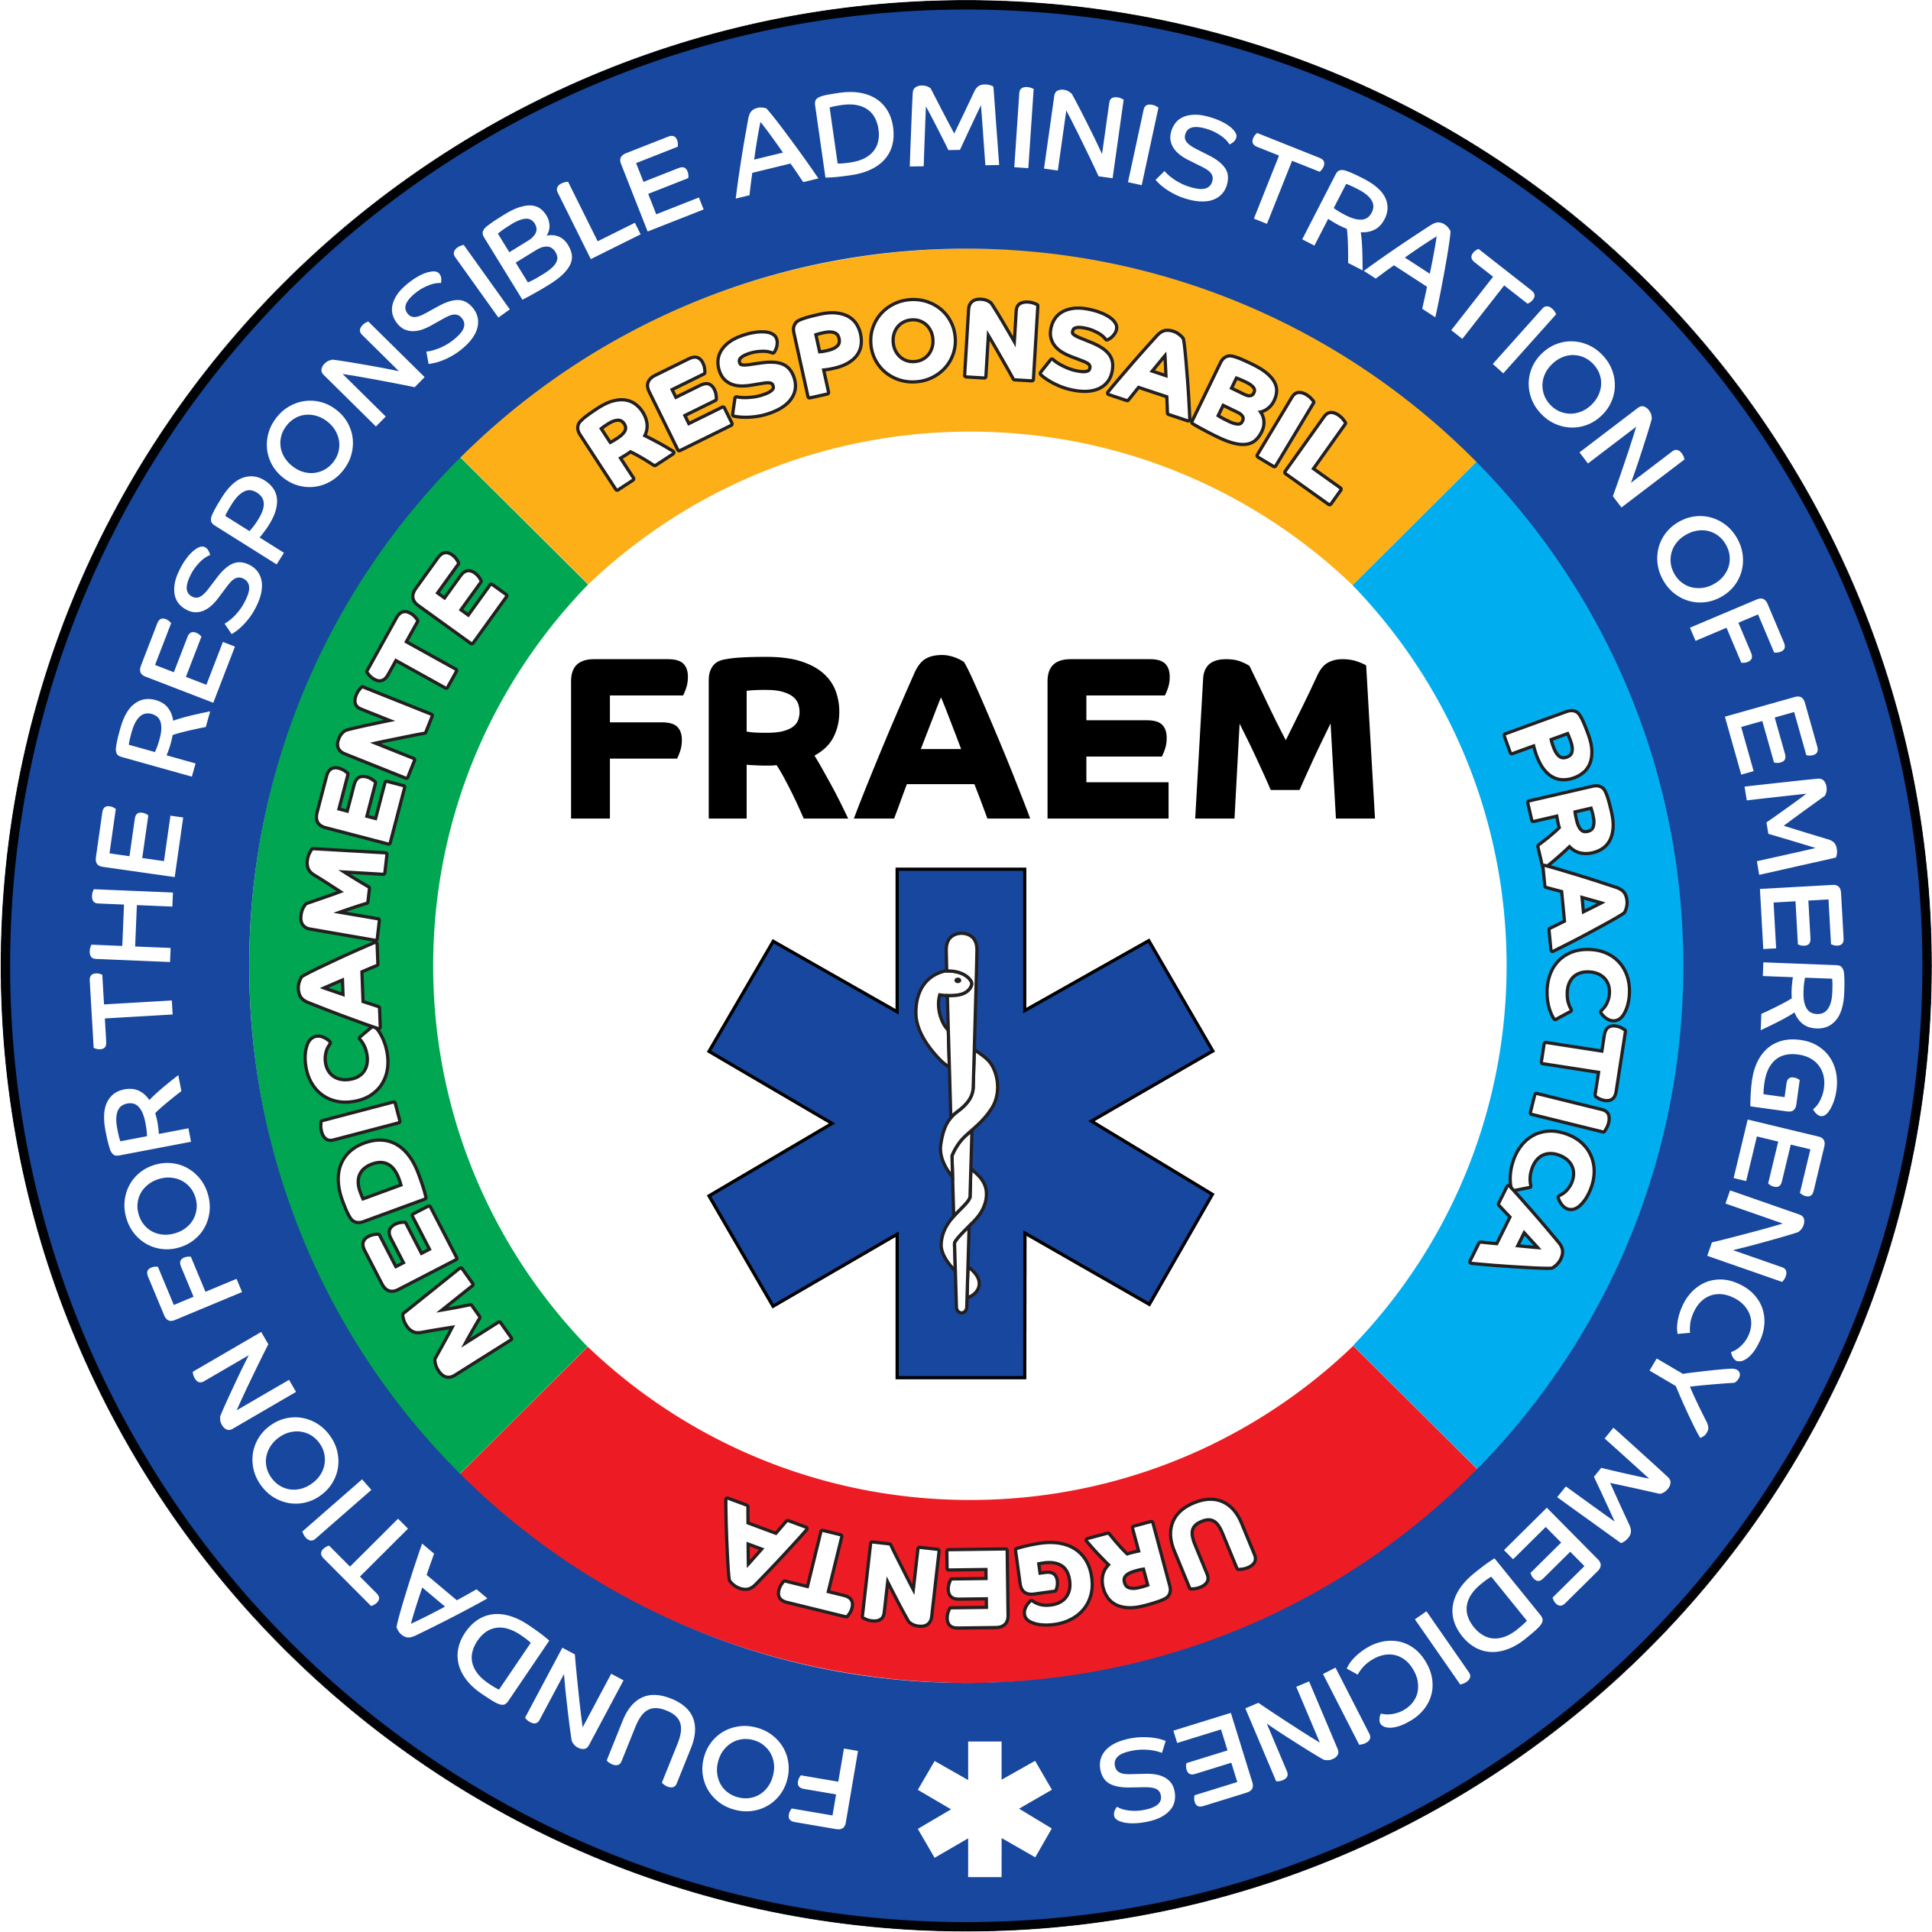 The Foundation for the Responsible Administration of Emergency Medicines